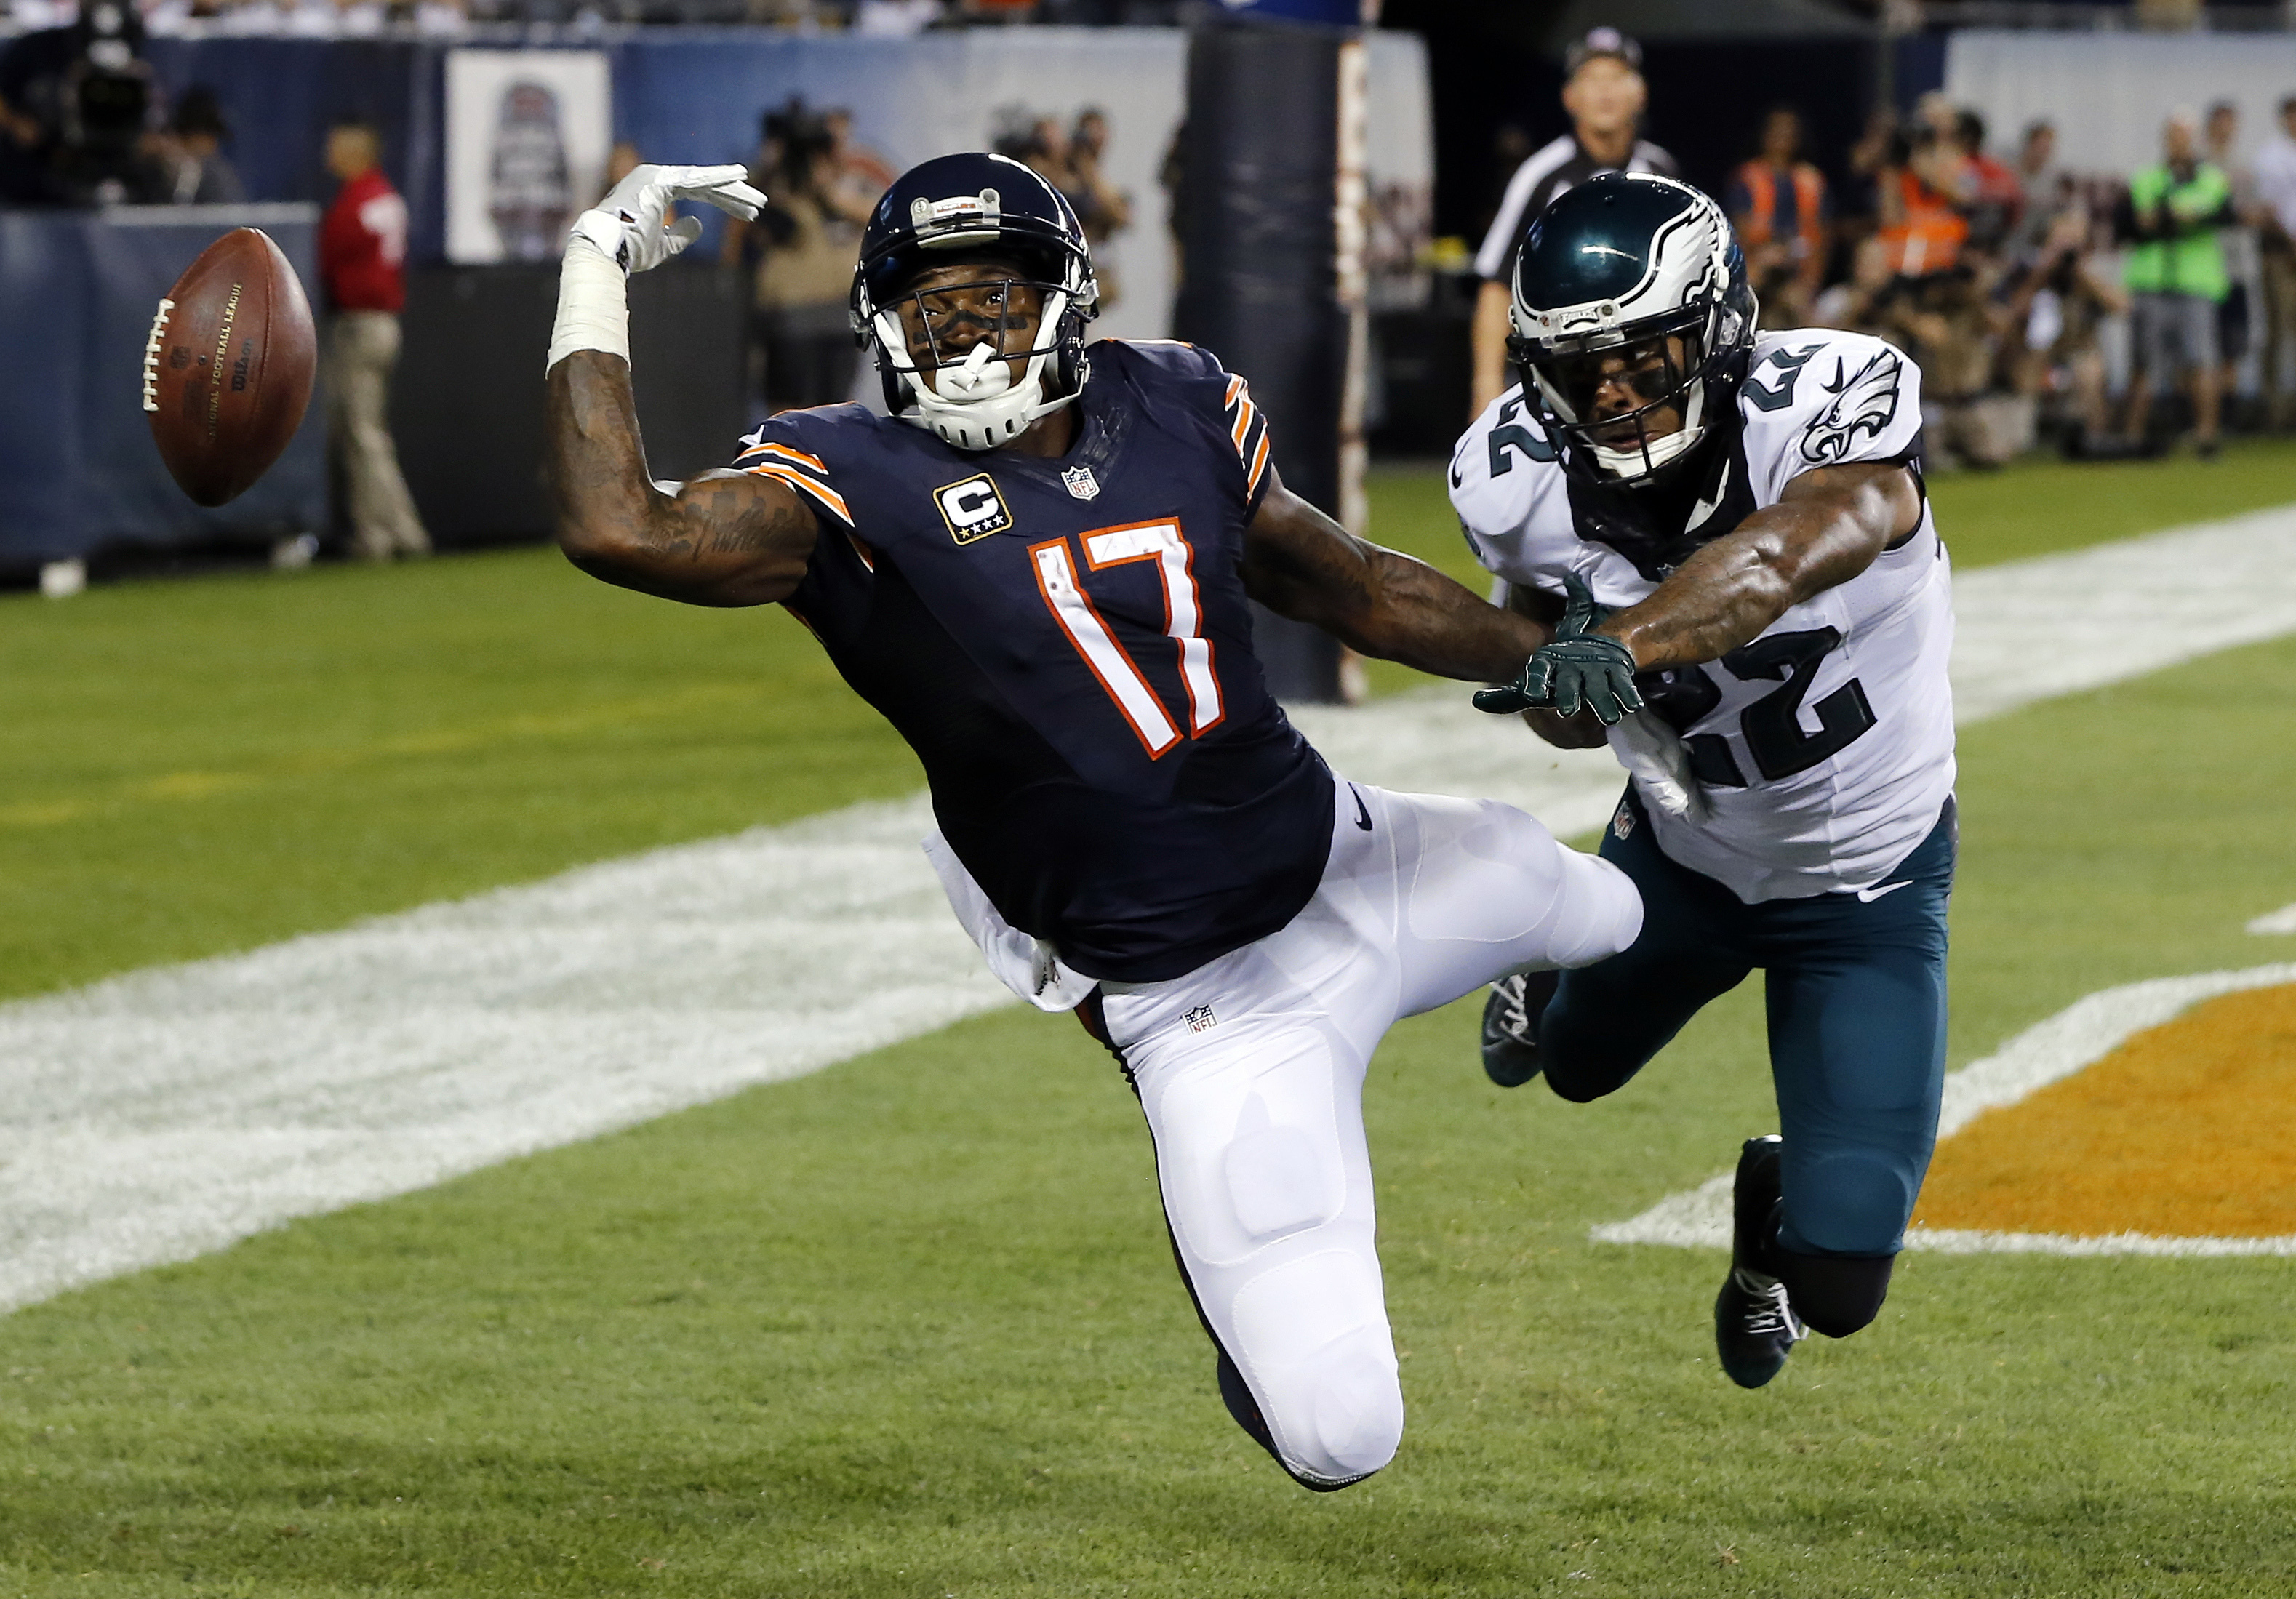 Philadelphia Eagles cornerback Nolan Carroll (22) breaks up a pass intended for Chicago Bears wide receiver Alshon Jeffery (17) during the first half of an NFL football game, Monday, Sept. 19, 2016, in Chicago. Pass interference against Carroll was called